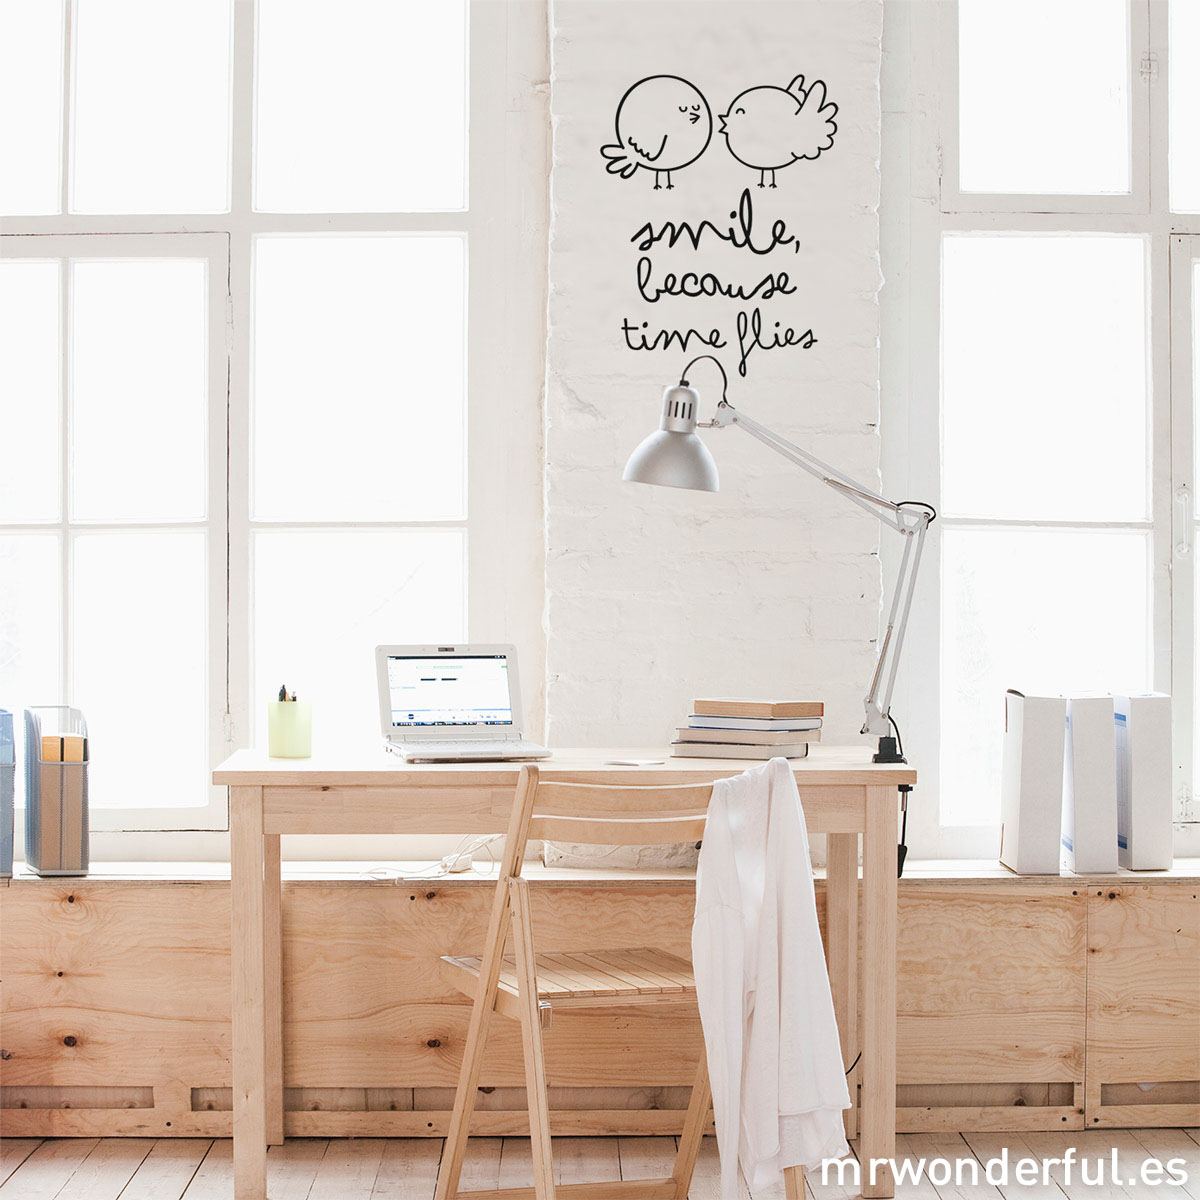 mrwonderful_vinilos_Time-Files_1200